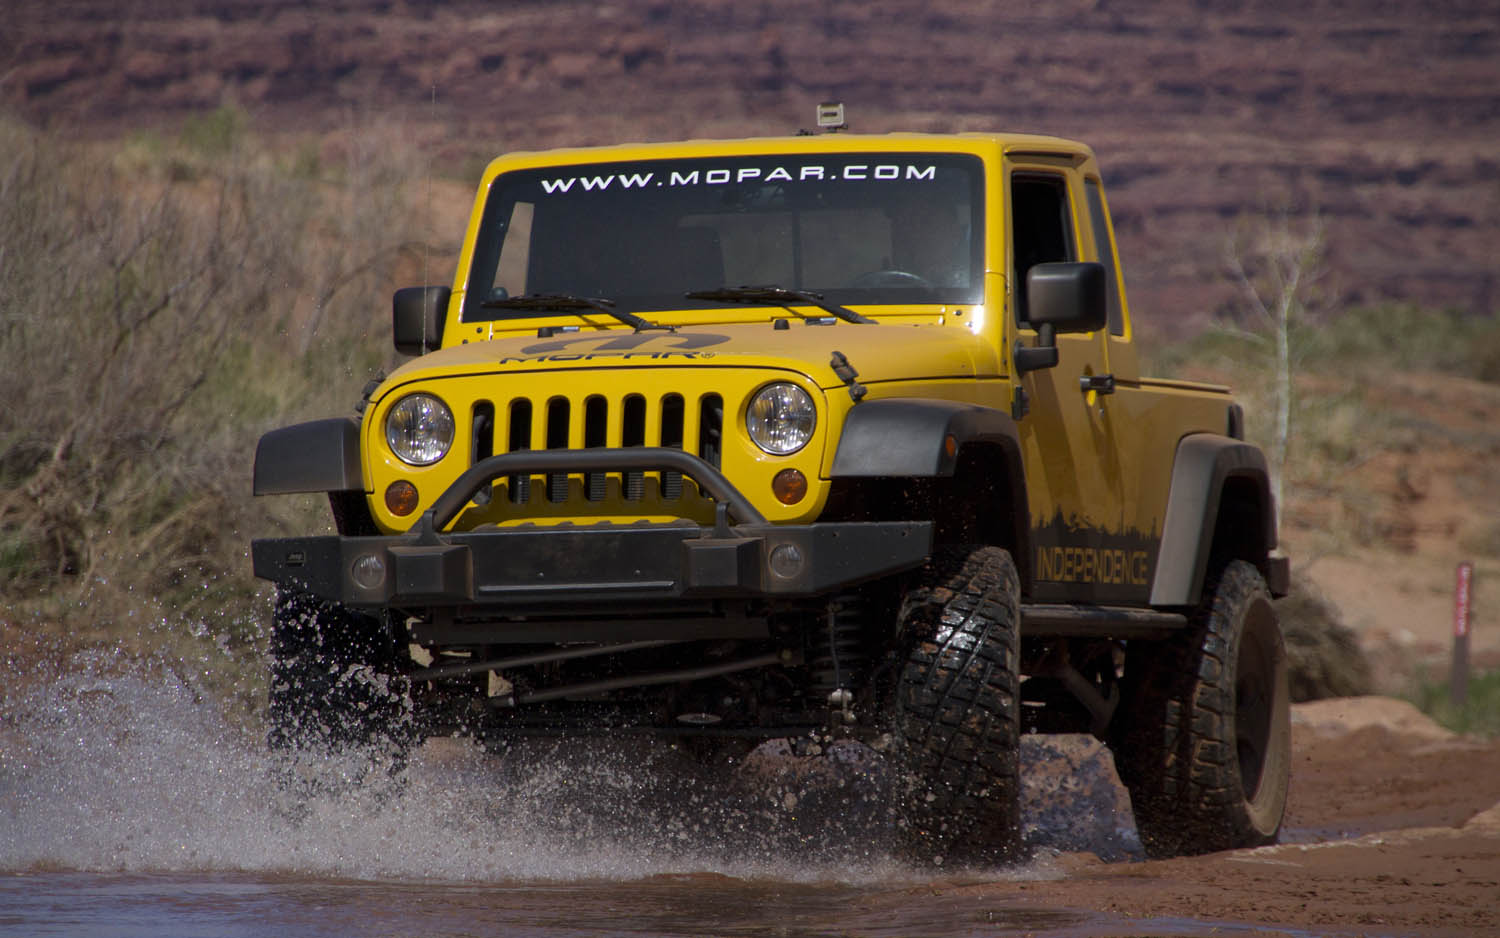 Fewer People More Things Jeep Prices Jk 8 Pickup Truck Conversion